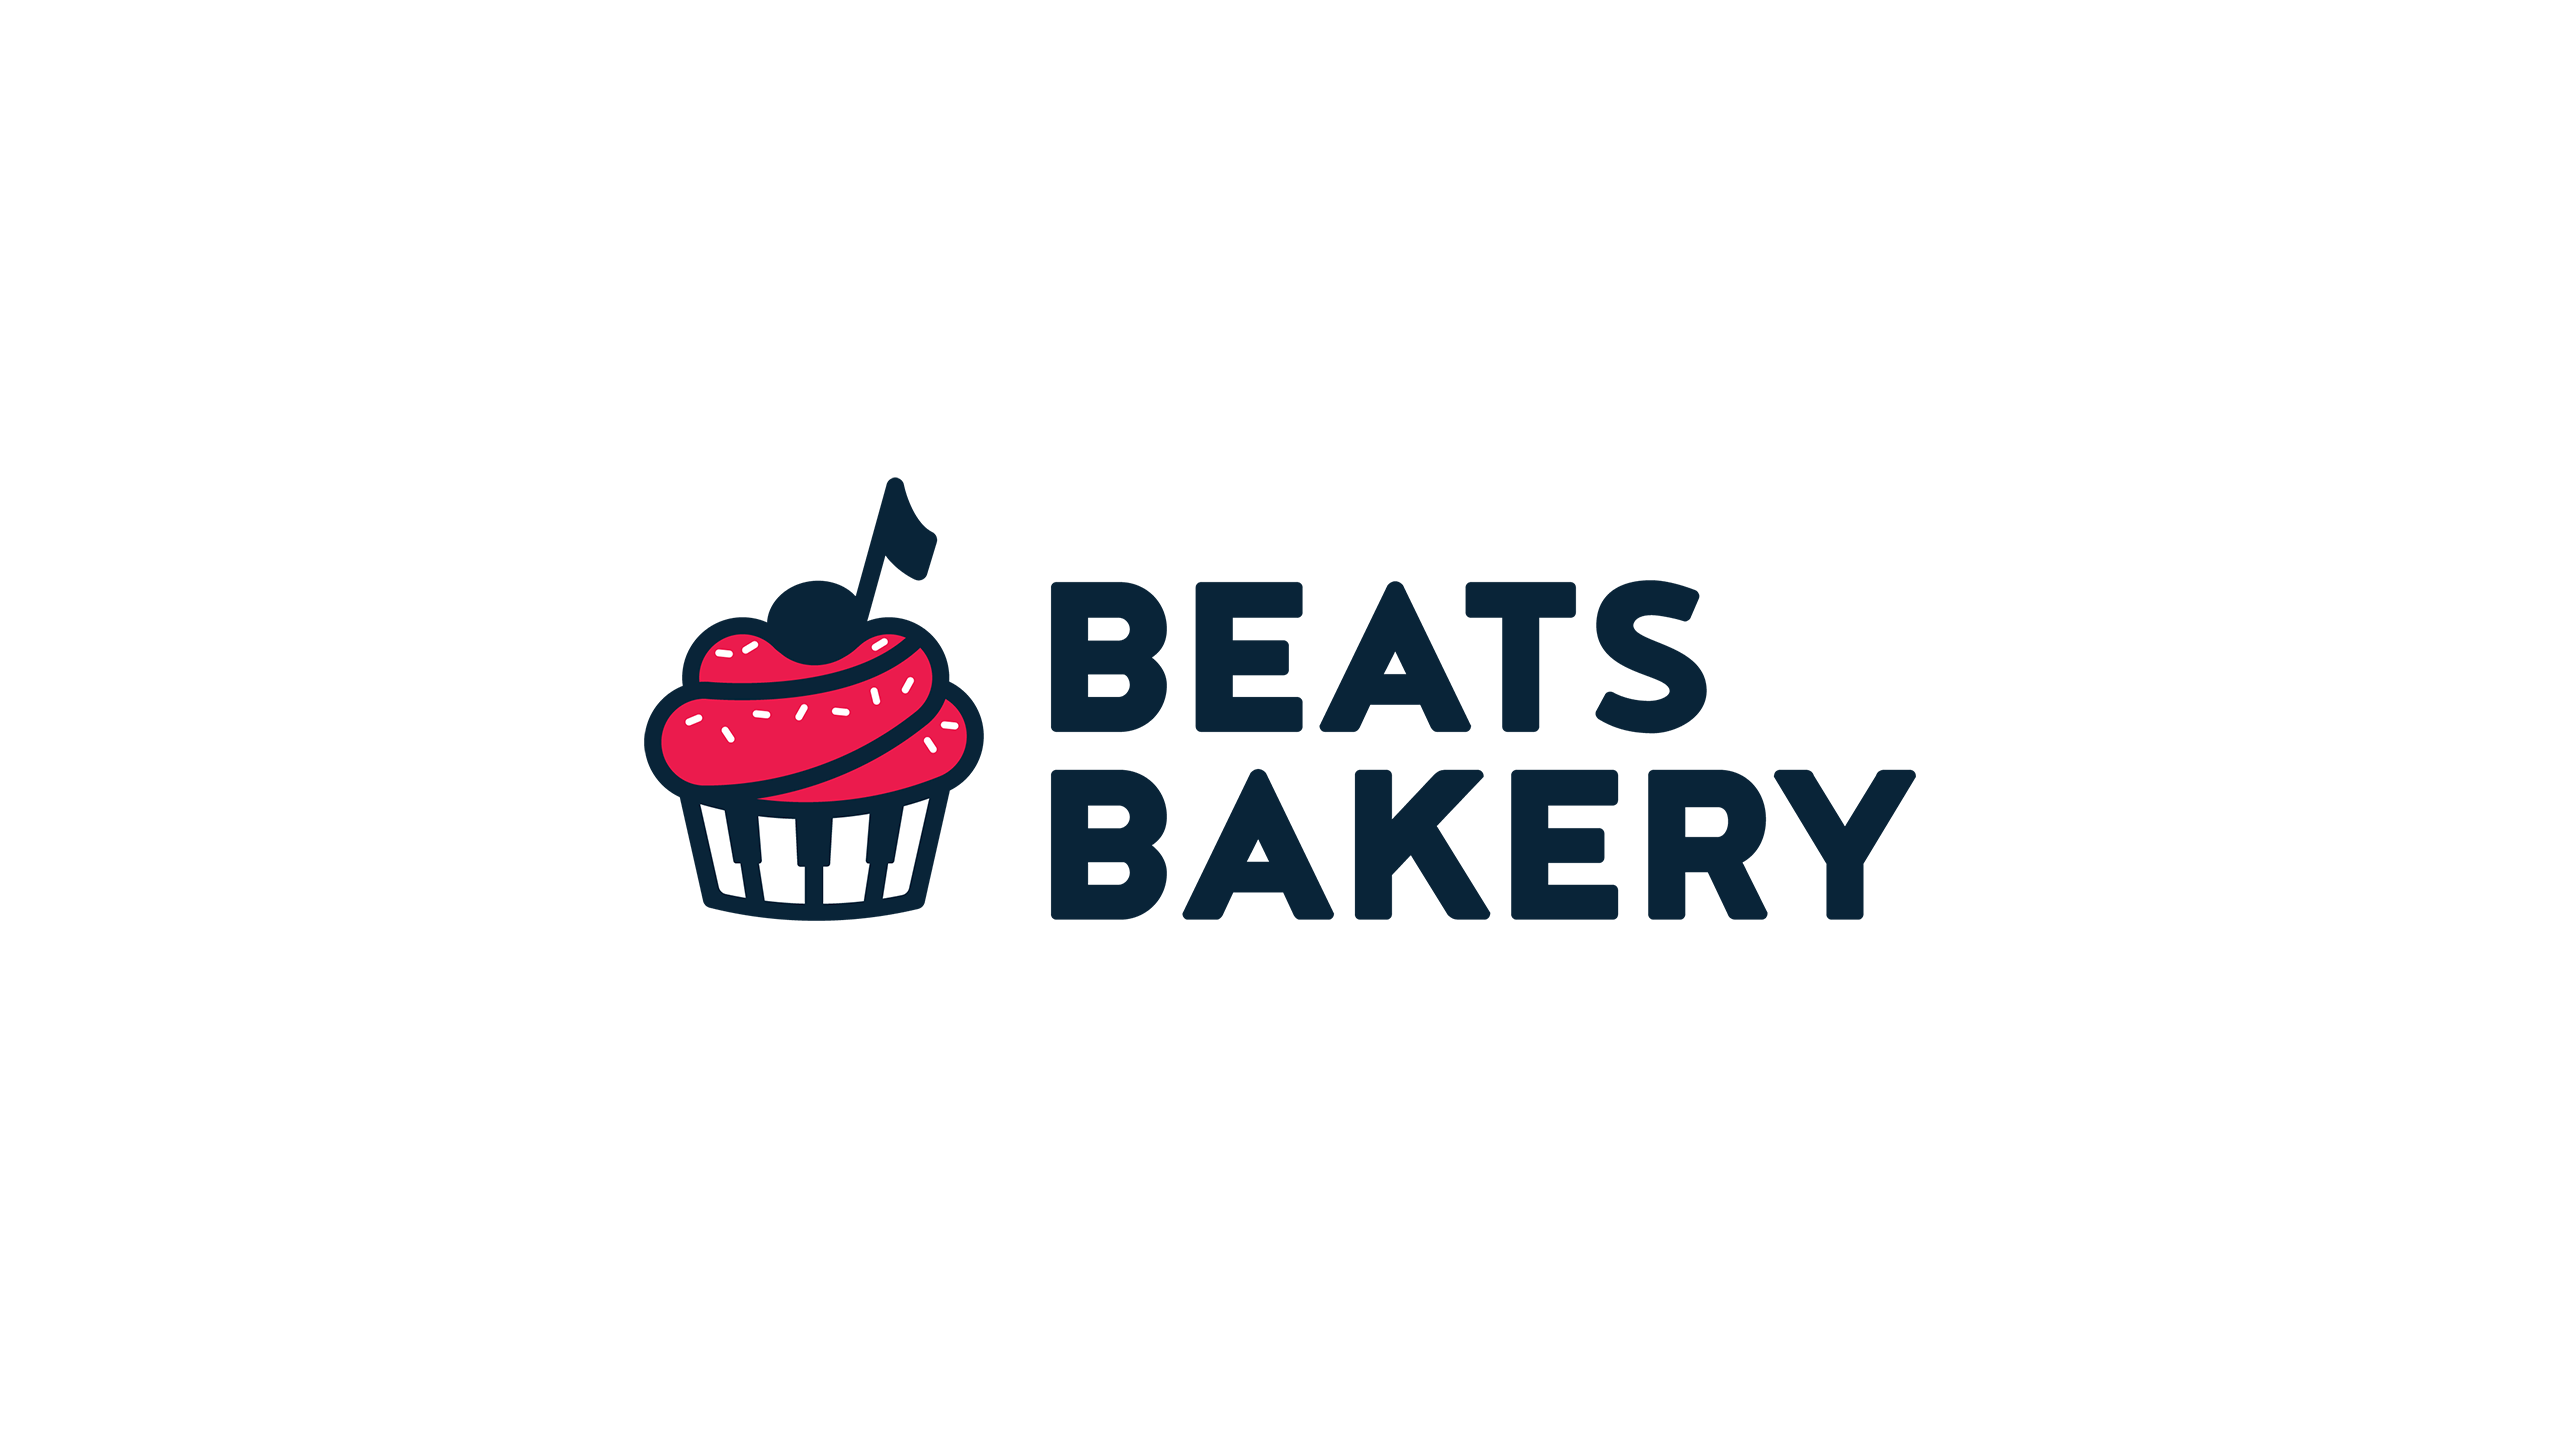 Beat bakery logo